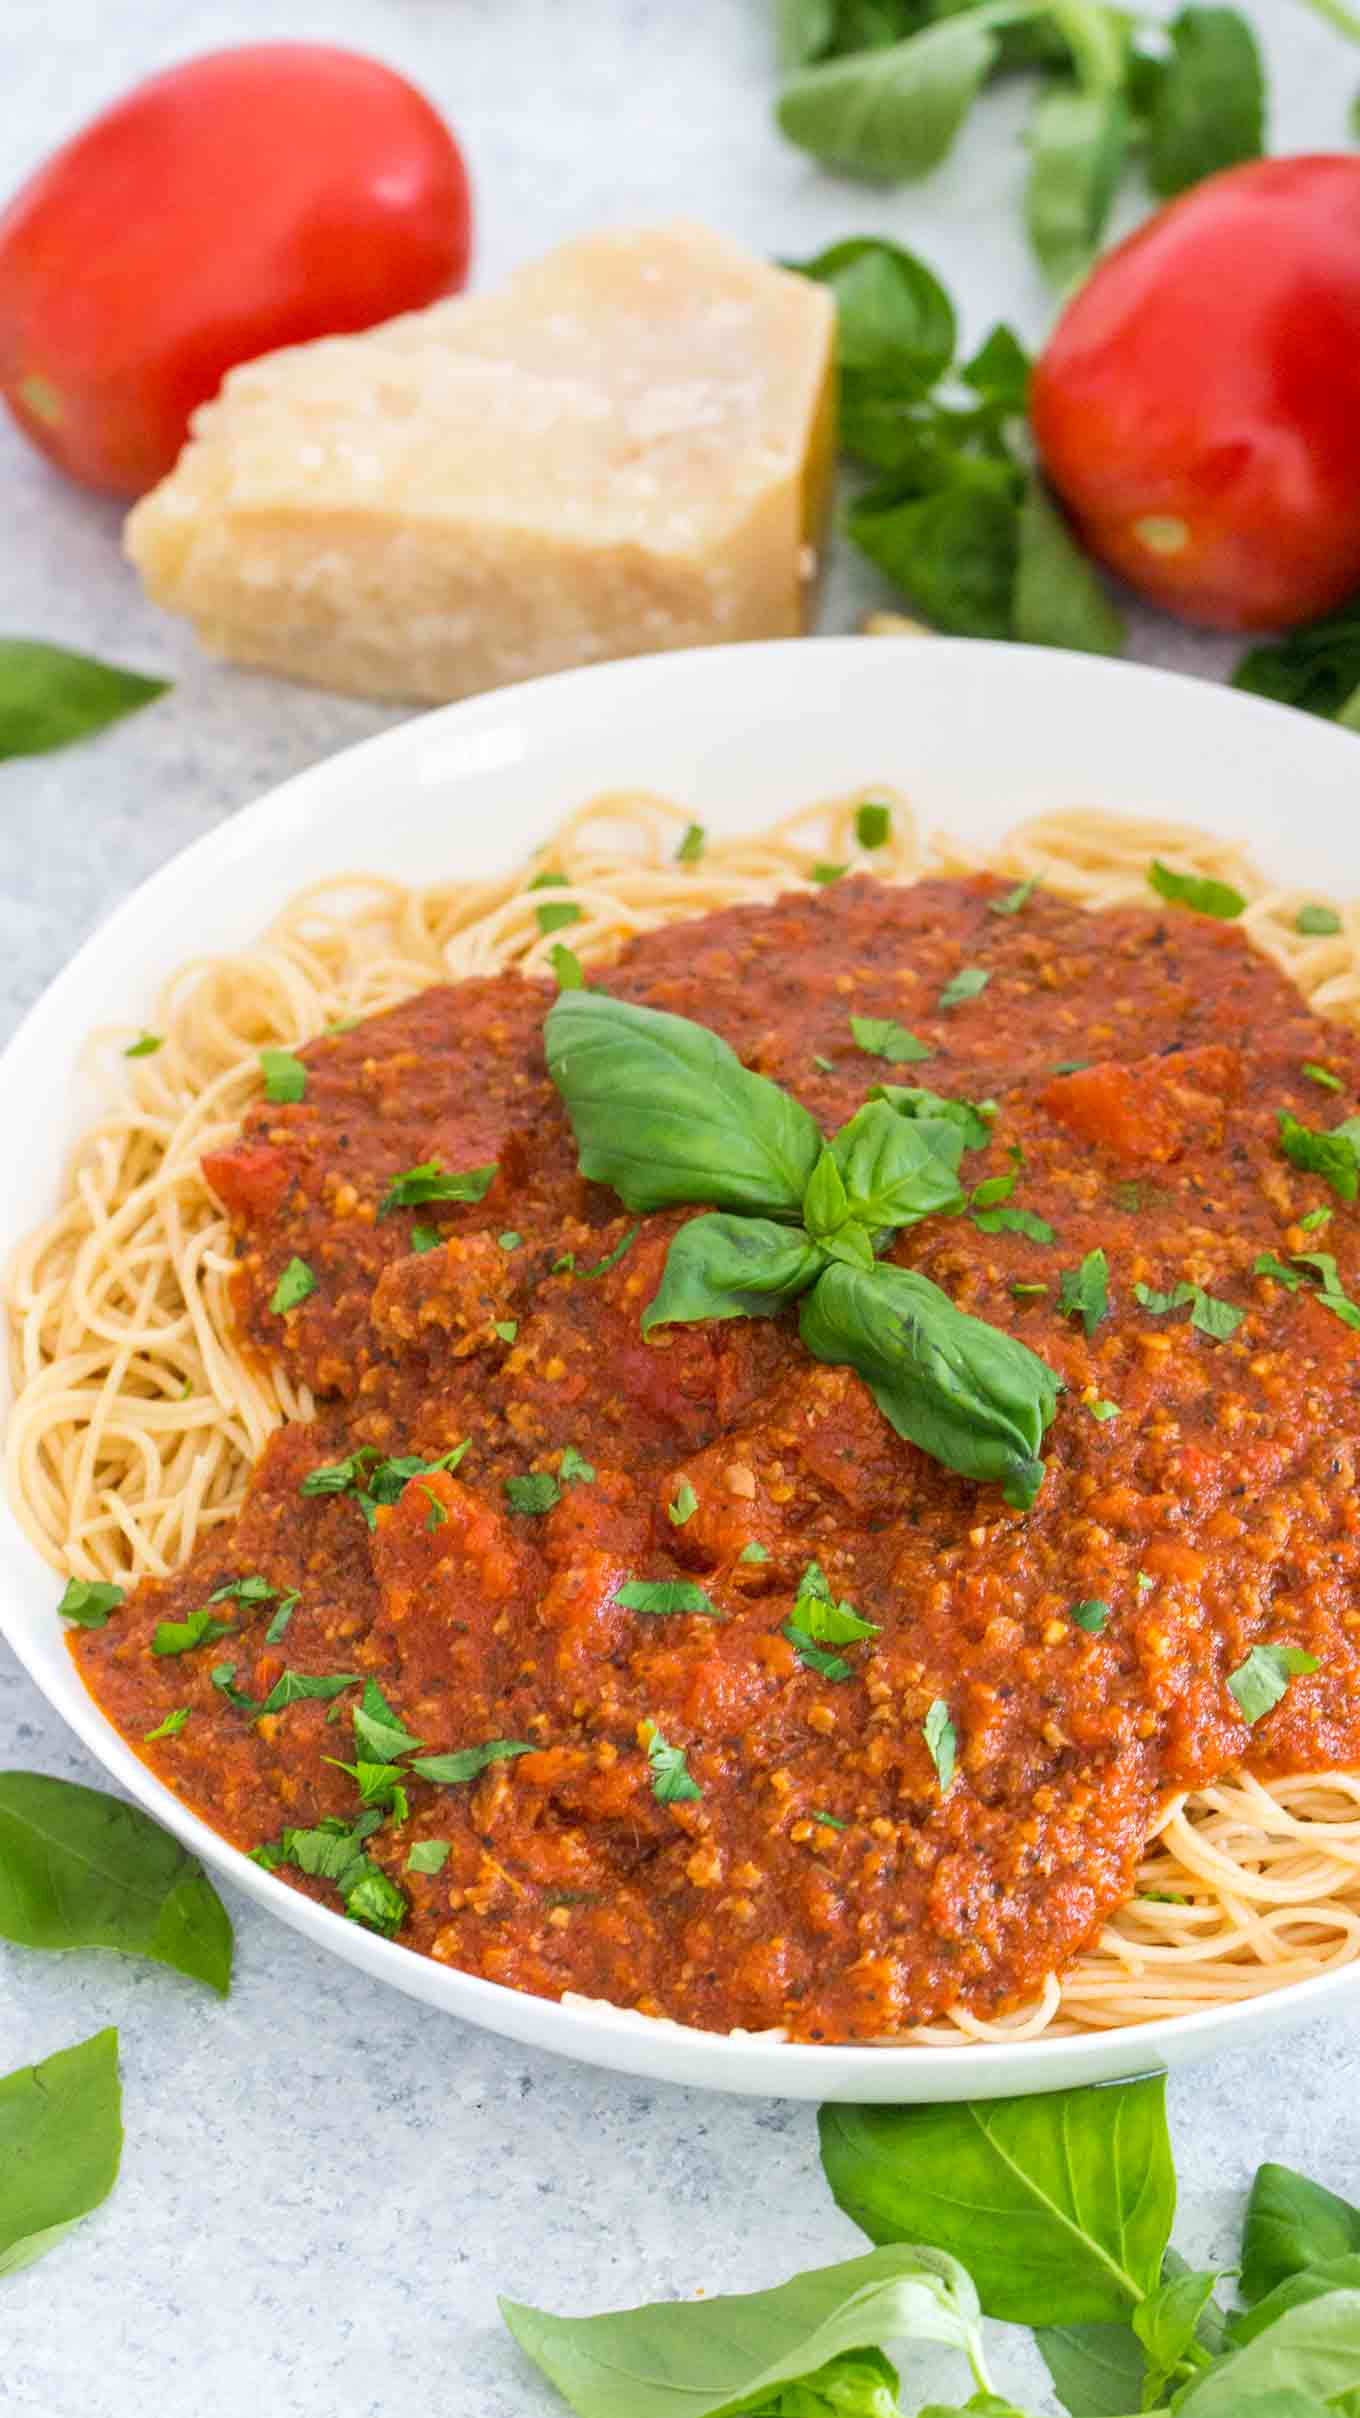 How to make homemade spaghetti sauce with diced tomatoes